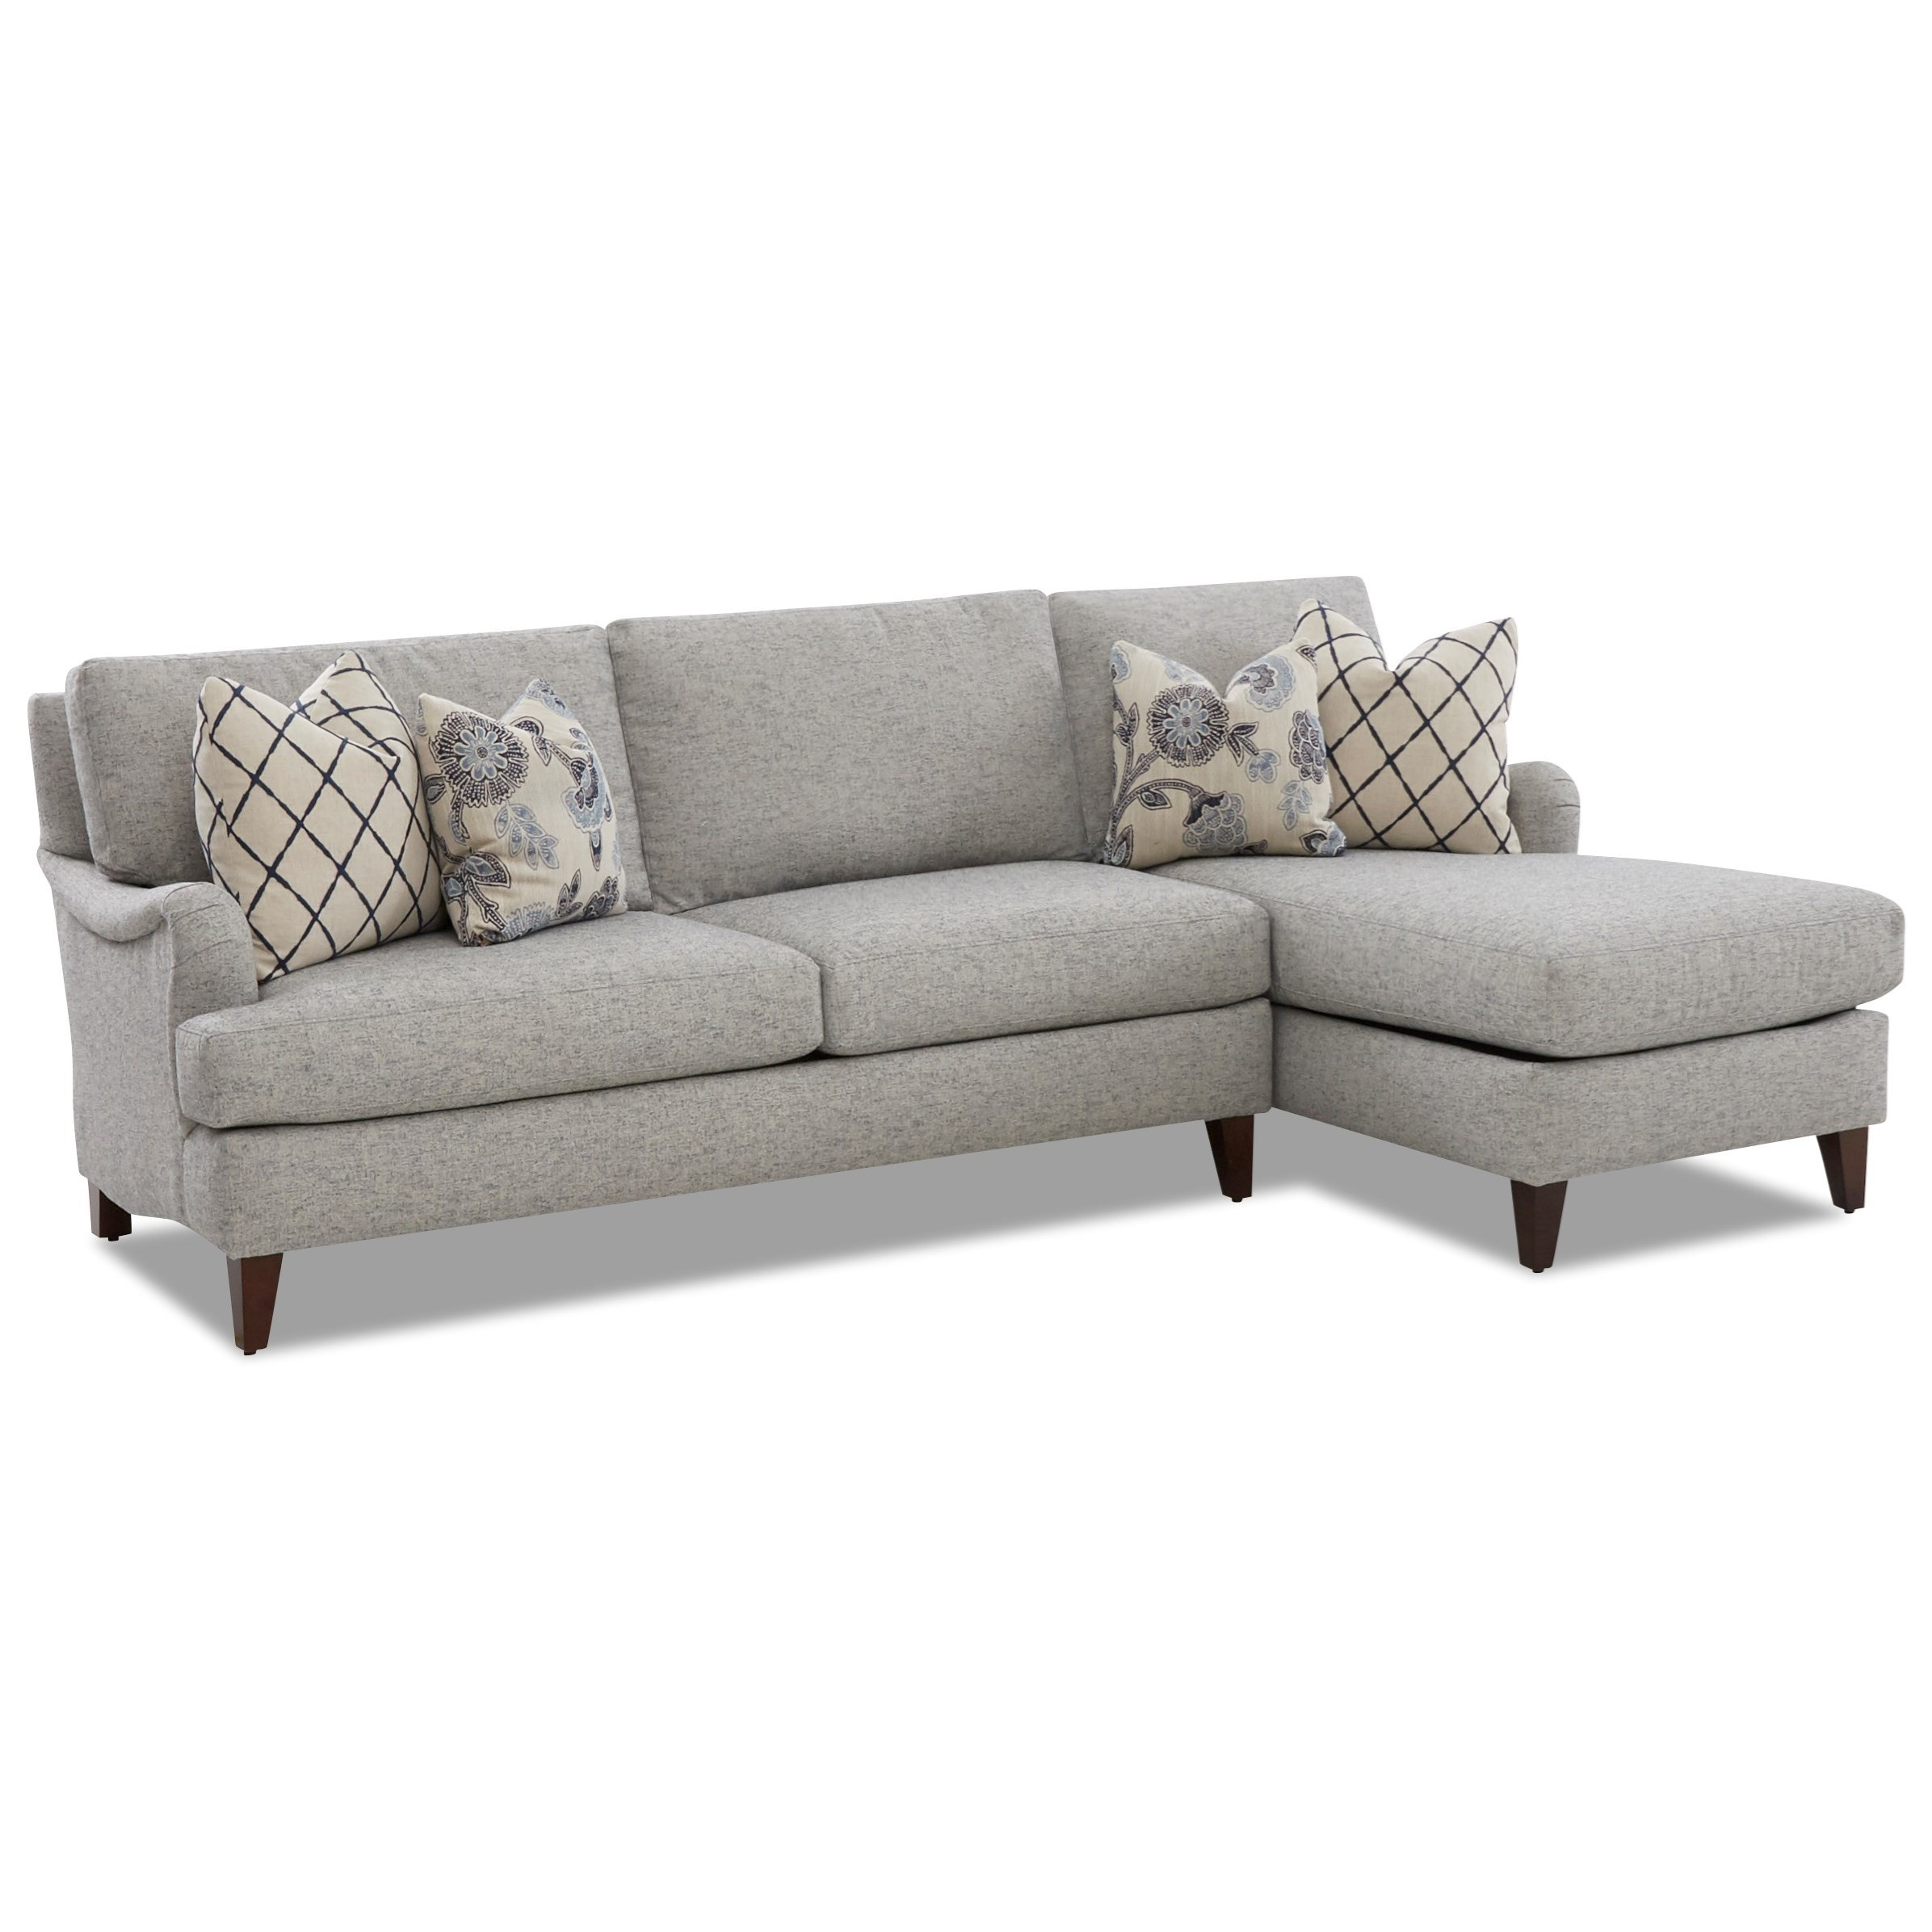 Alden Sofa Chaise by Klaussner at Value City Furniture